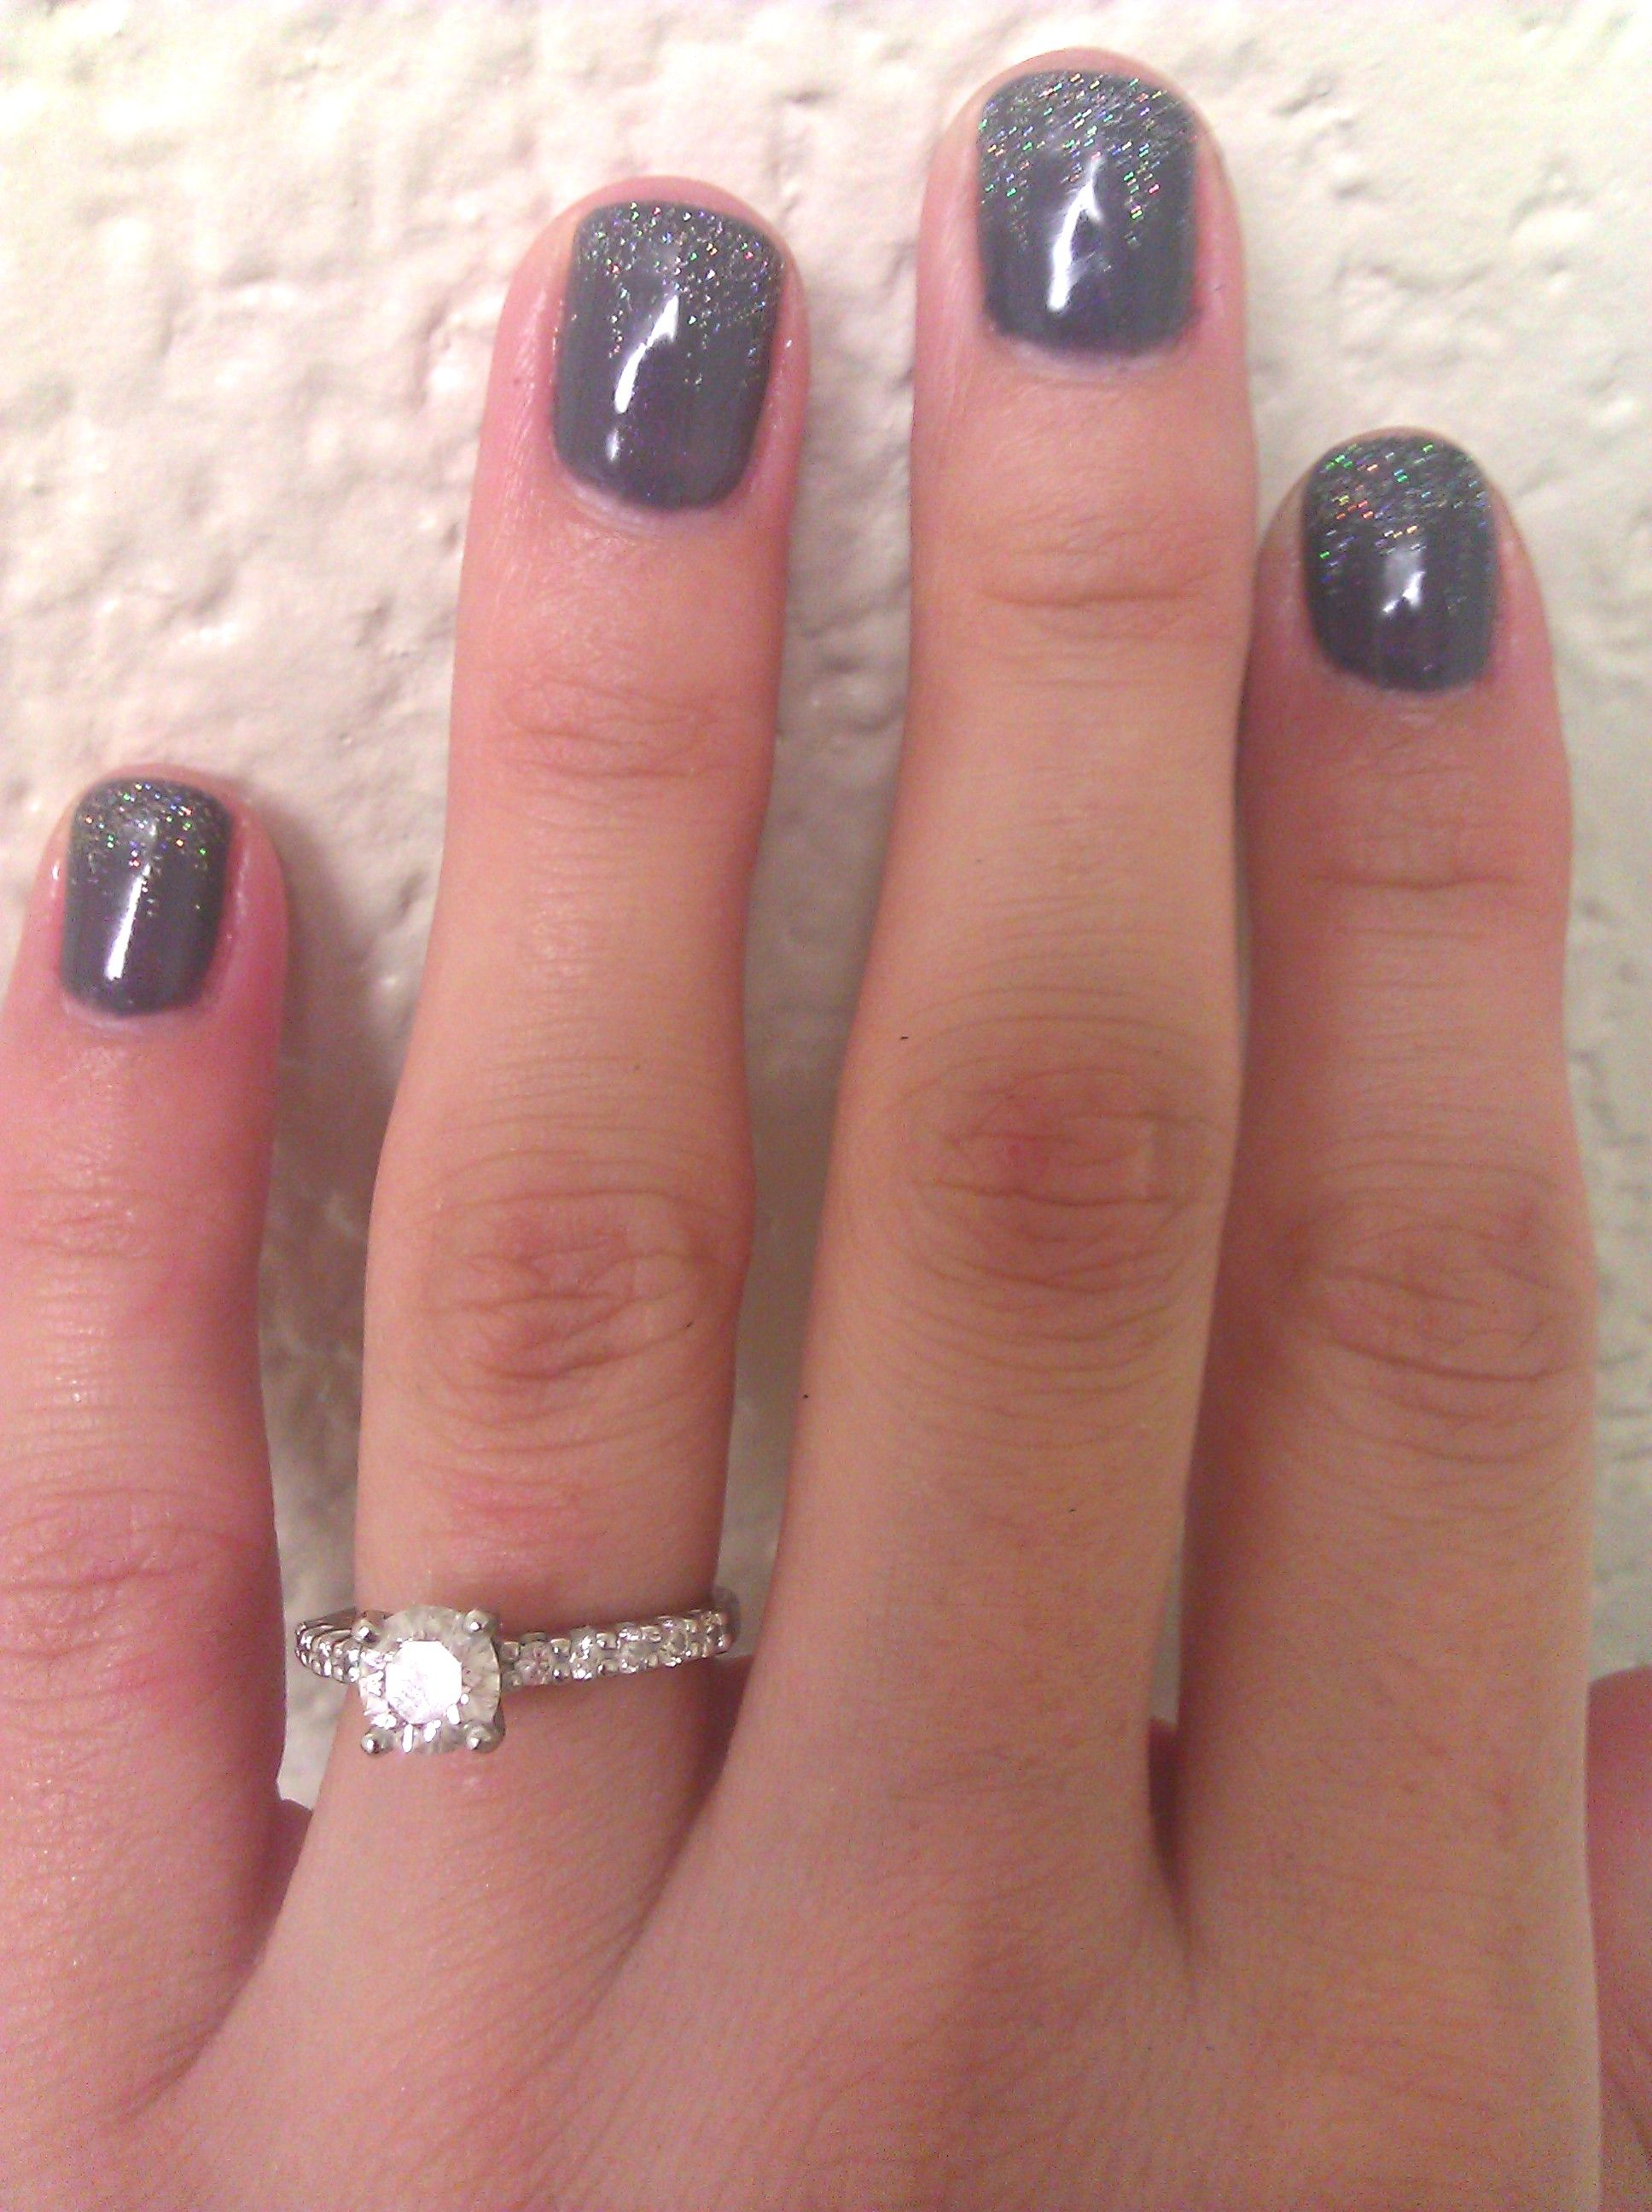 Nails done with Gelish/Harmony product..gray as the base coat and ...